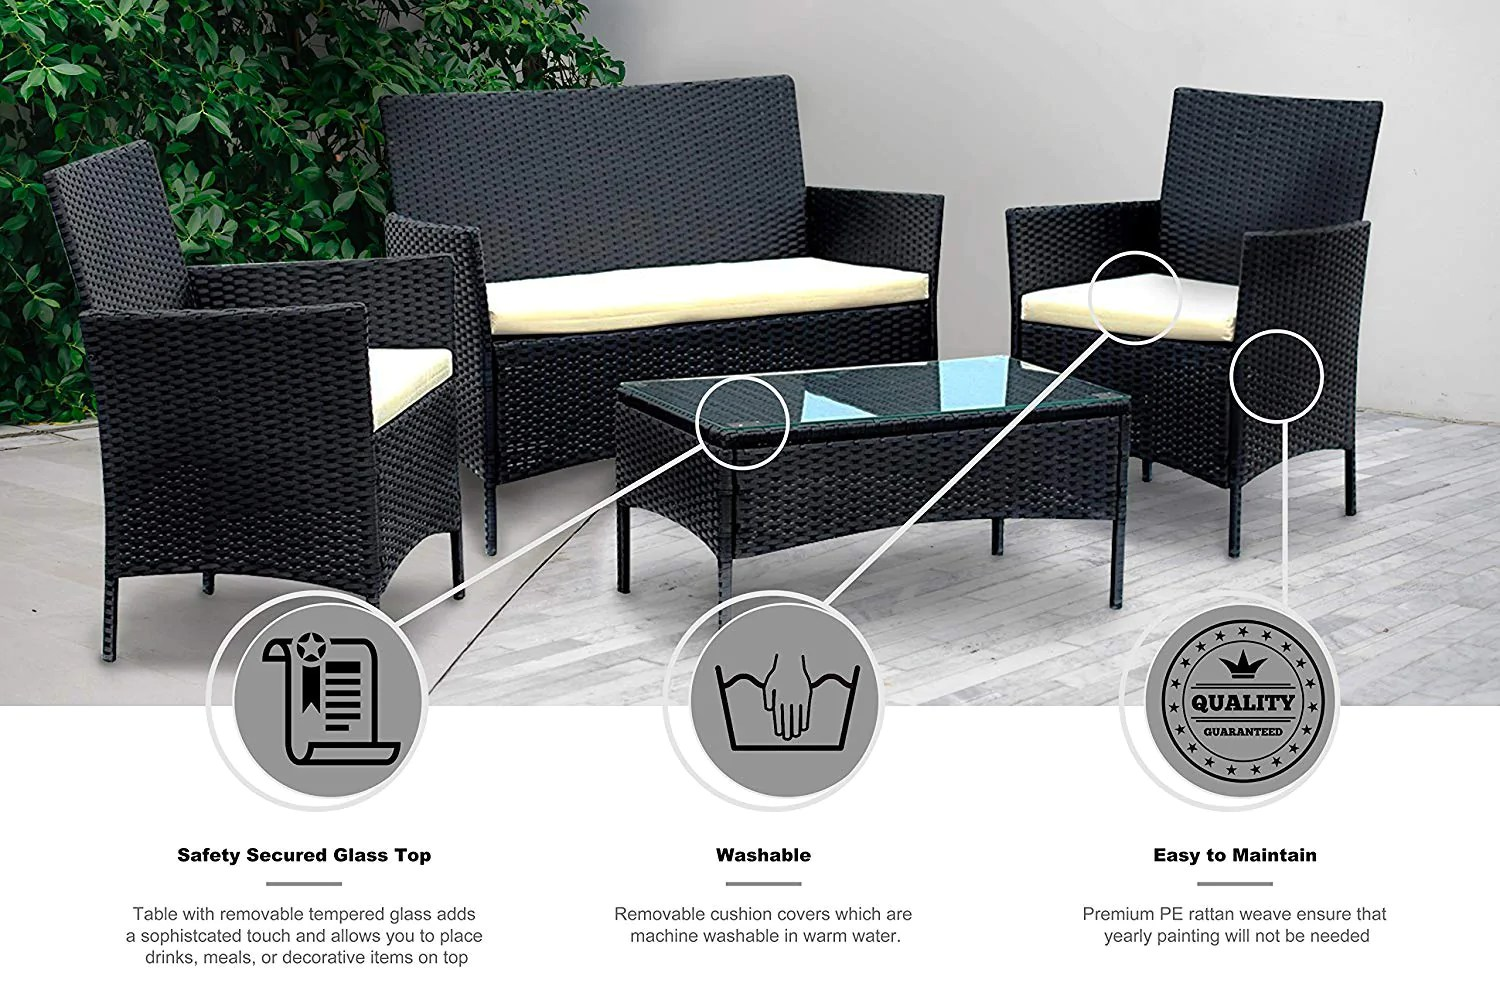 Rattan Sofa Set Clearance Ids Home Patio Furniture Set Clearance Rattan Wicker Patio Dining Table And Chair Indoor Outdoor Furniture Set Balcony Dining Set